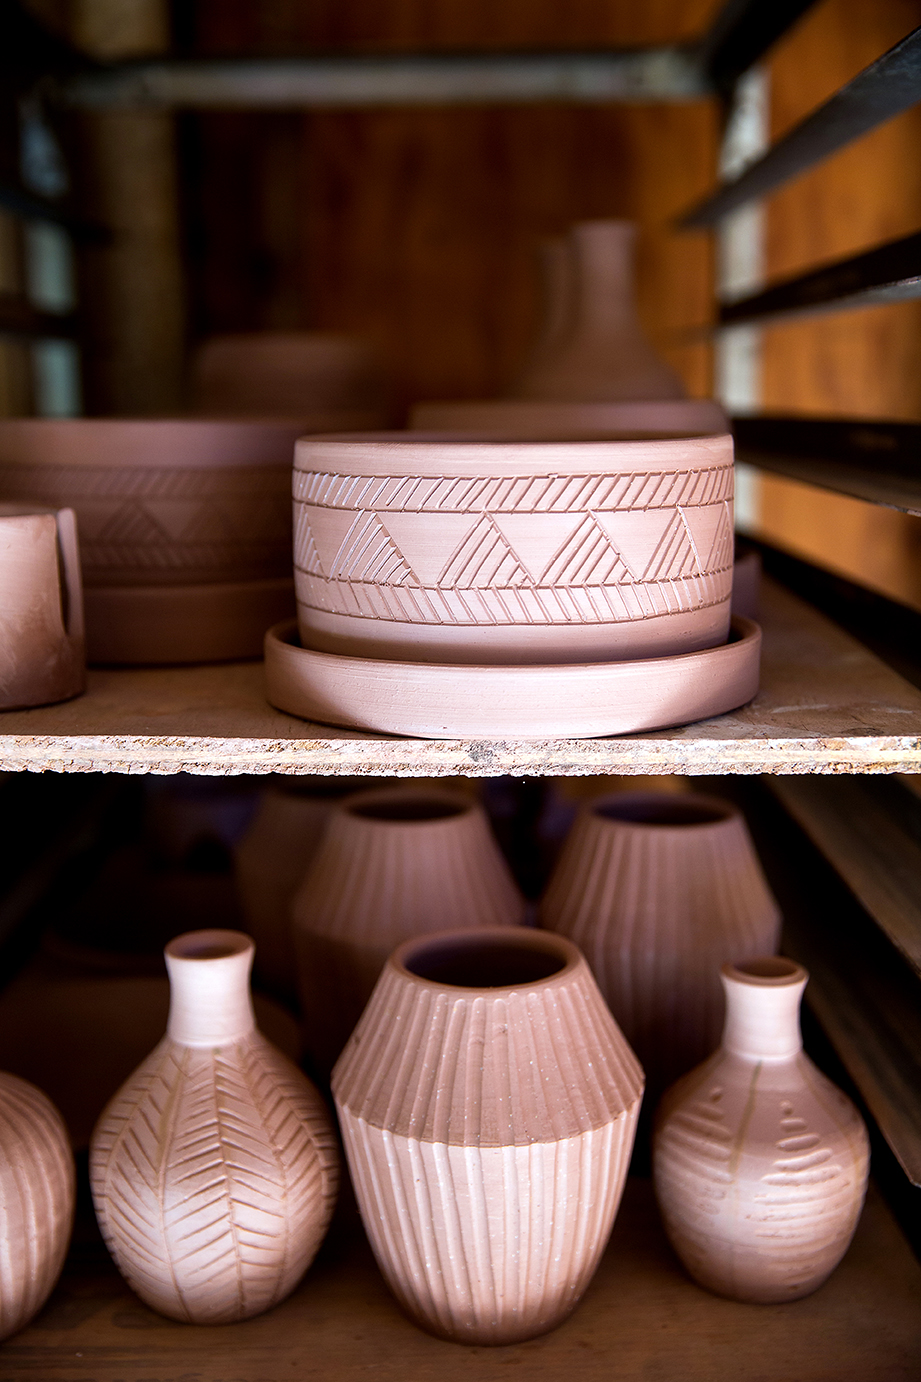 Some of Atoe's pieces waiting to be finished. Photo by Collin Richie.